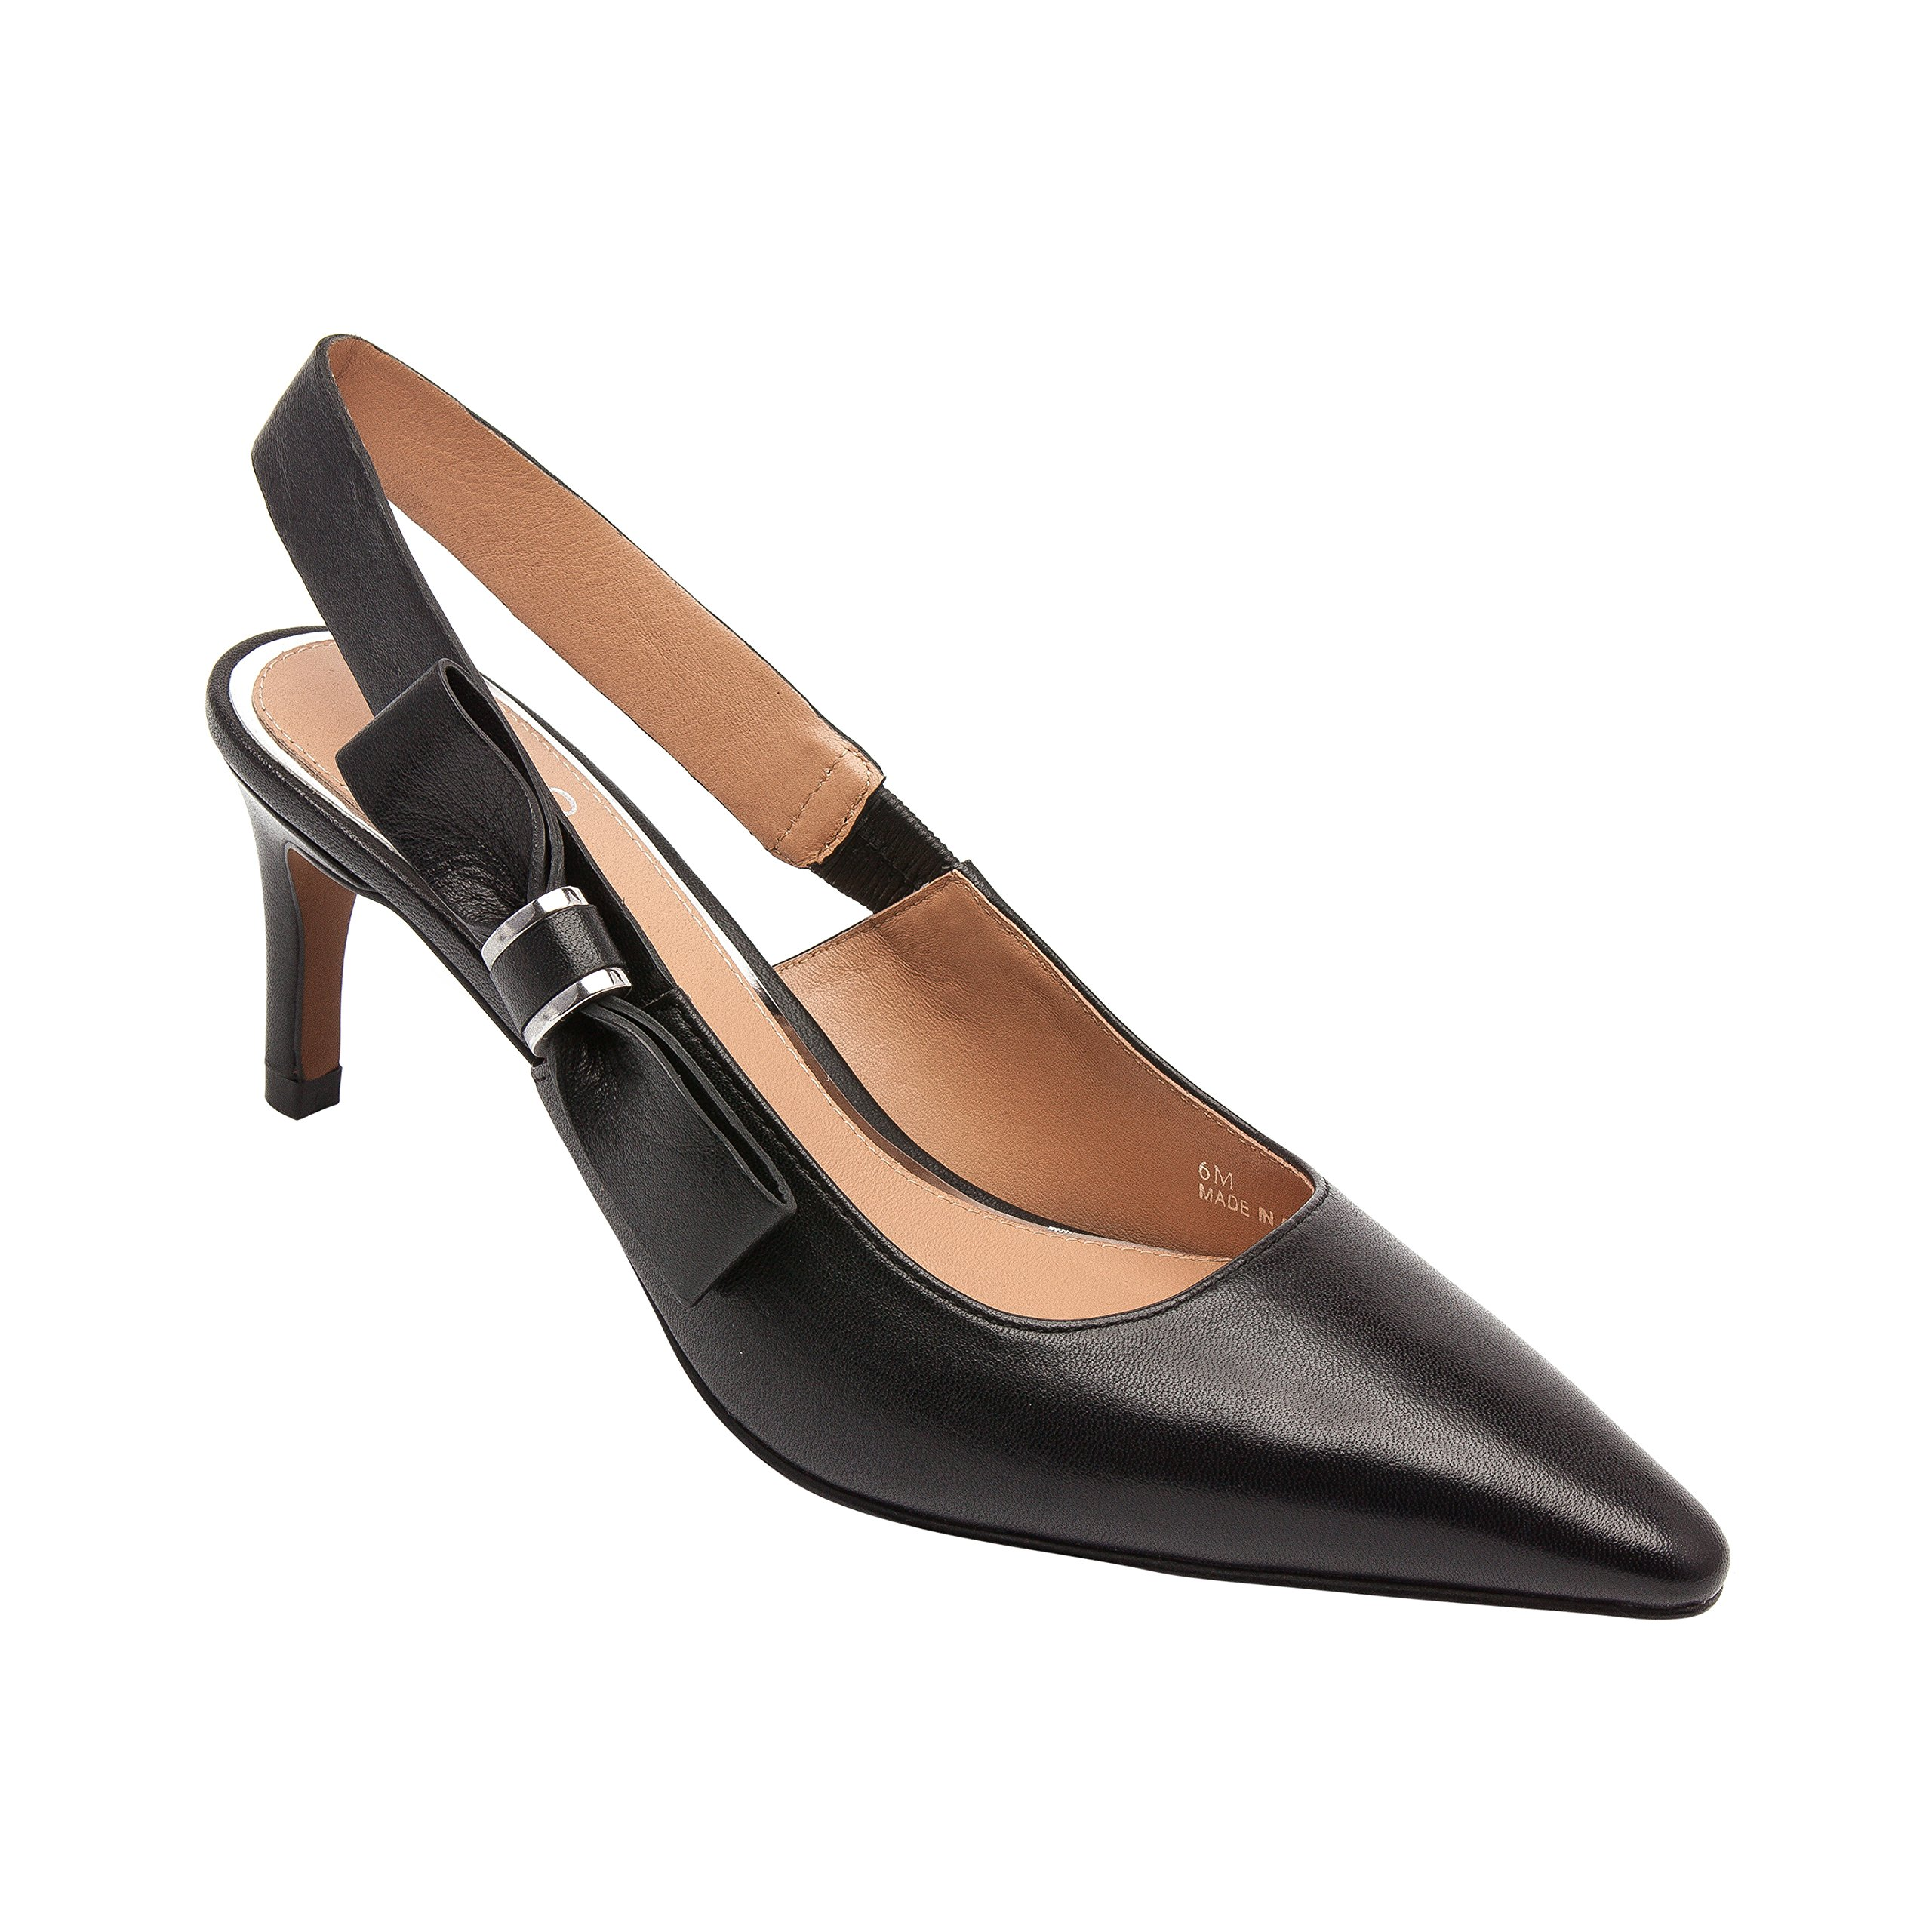 Linea Paolo Cora   Women's Pointy Toe Mid-height Leather Slingback (New Spring) Black Leather 10M